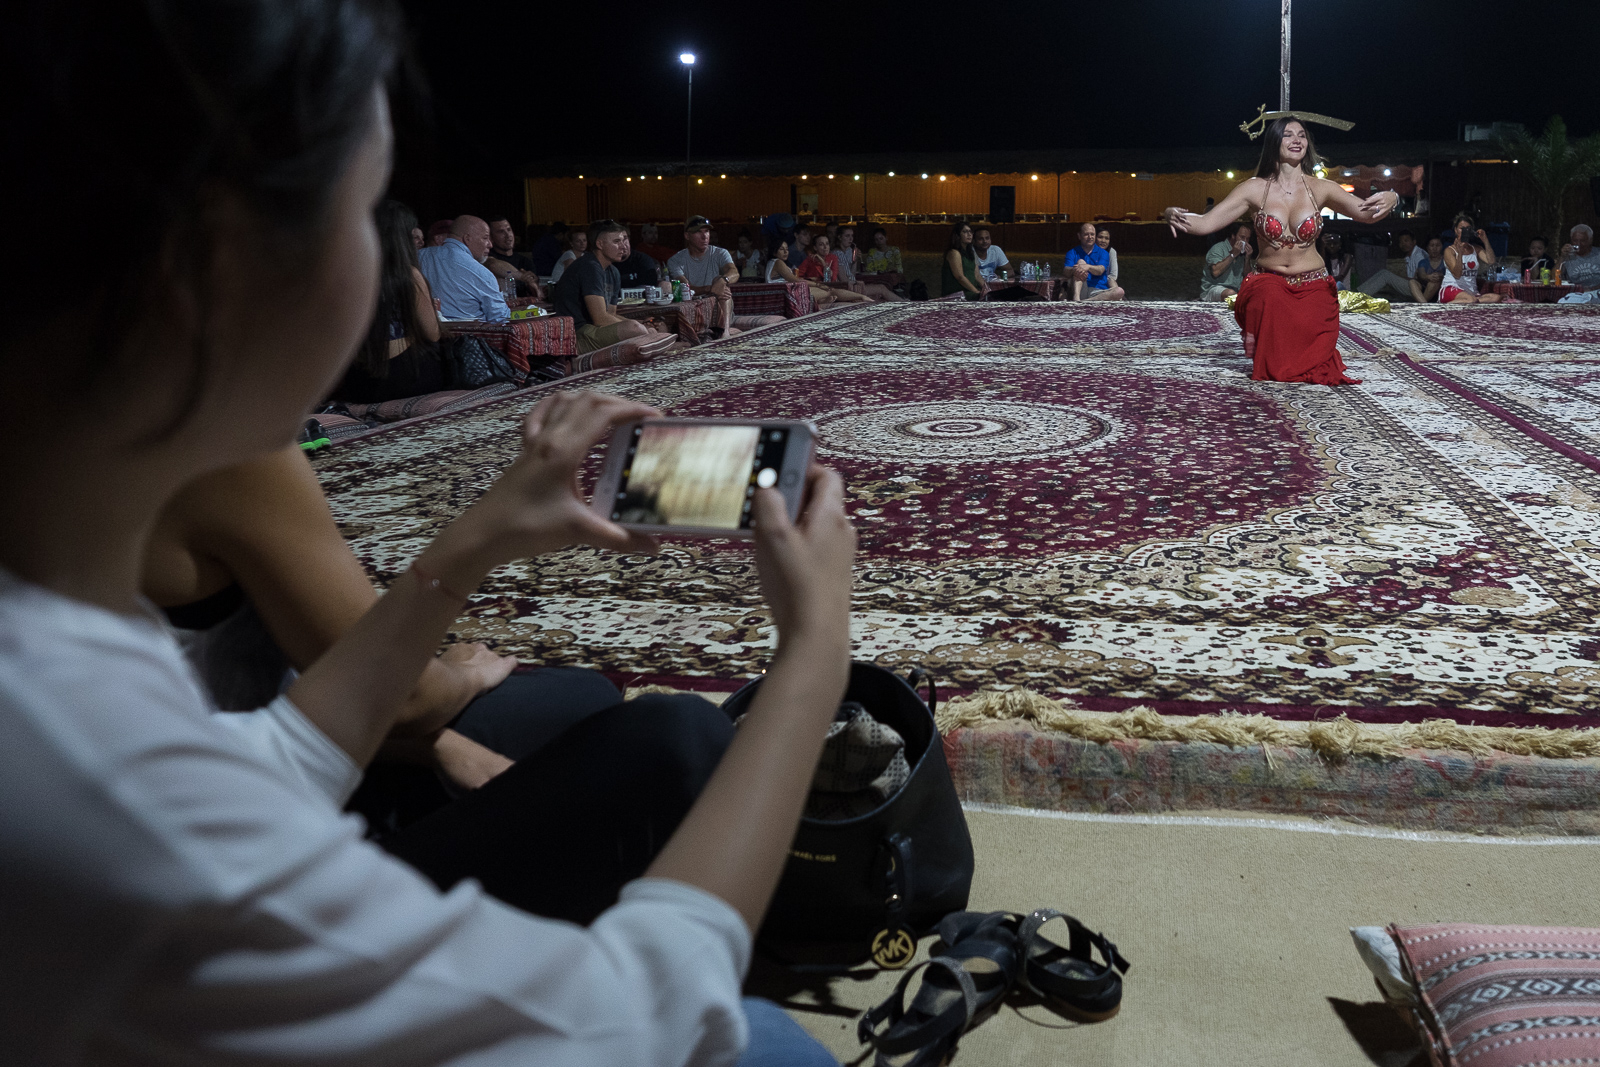 A belly dancer at a desert camp outside Abu Dhabi